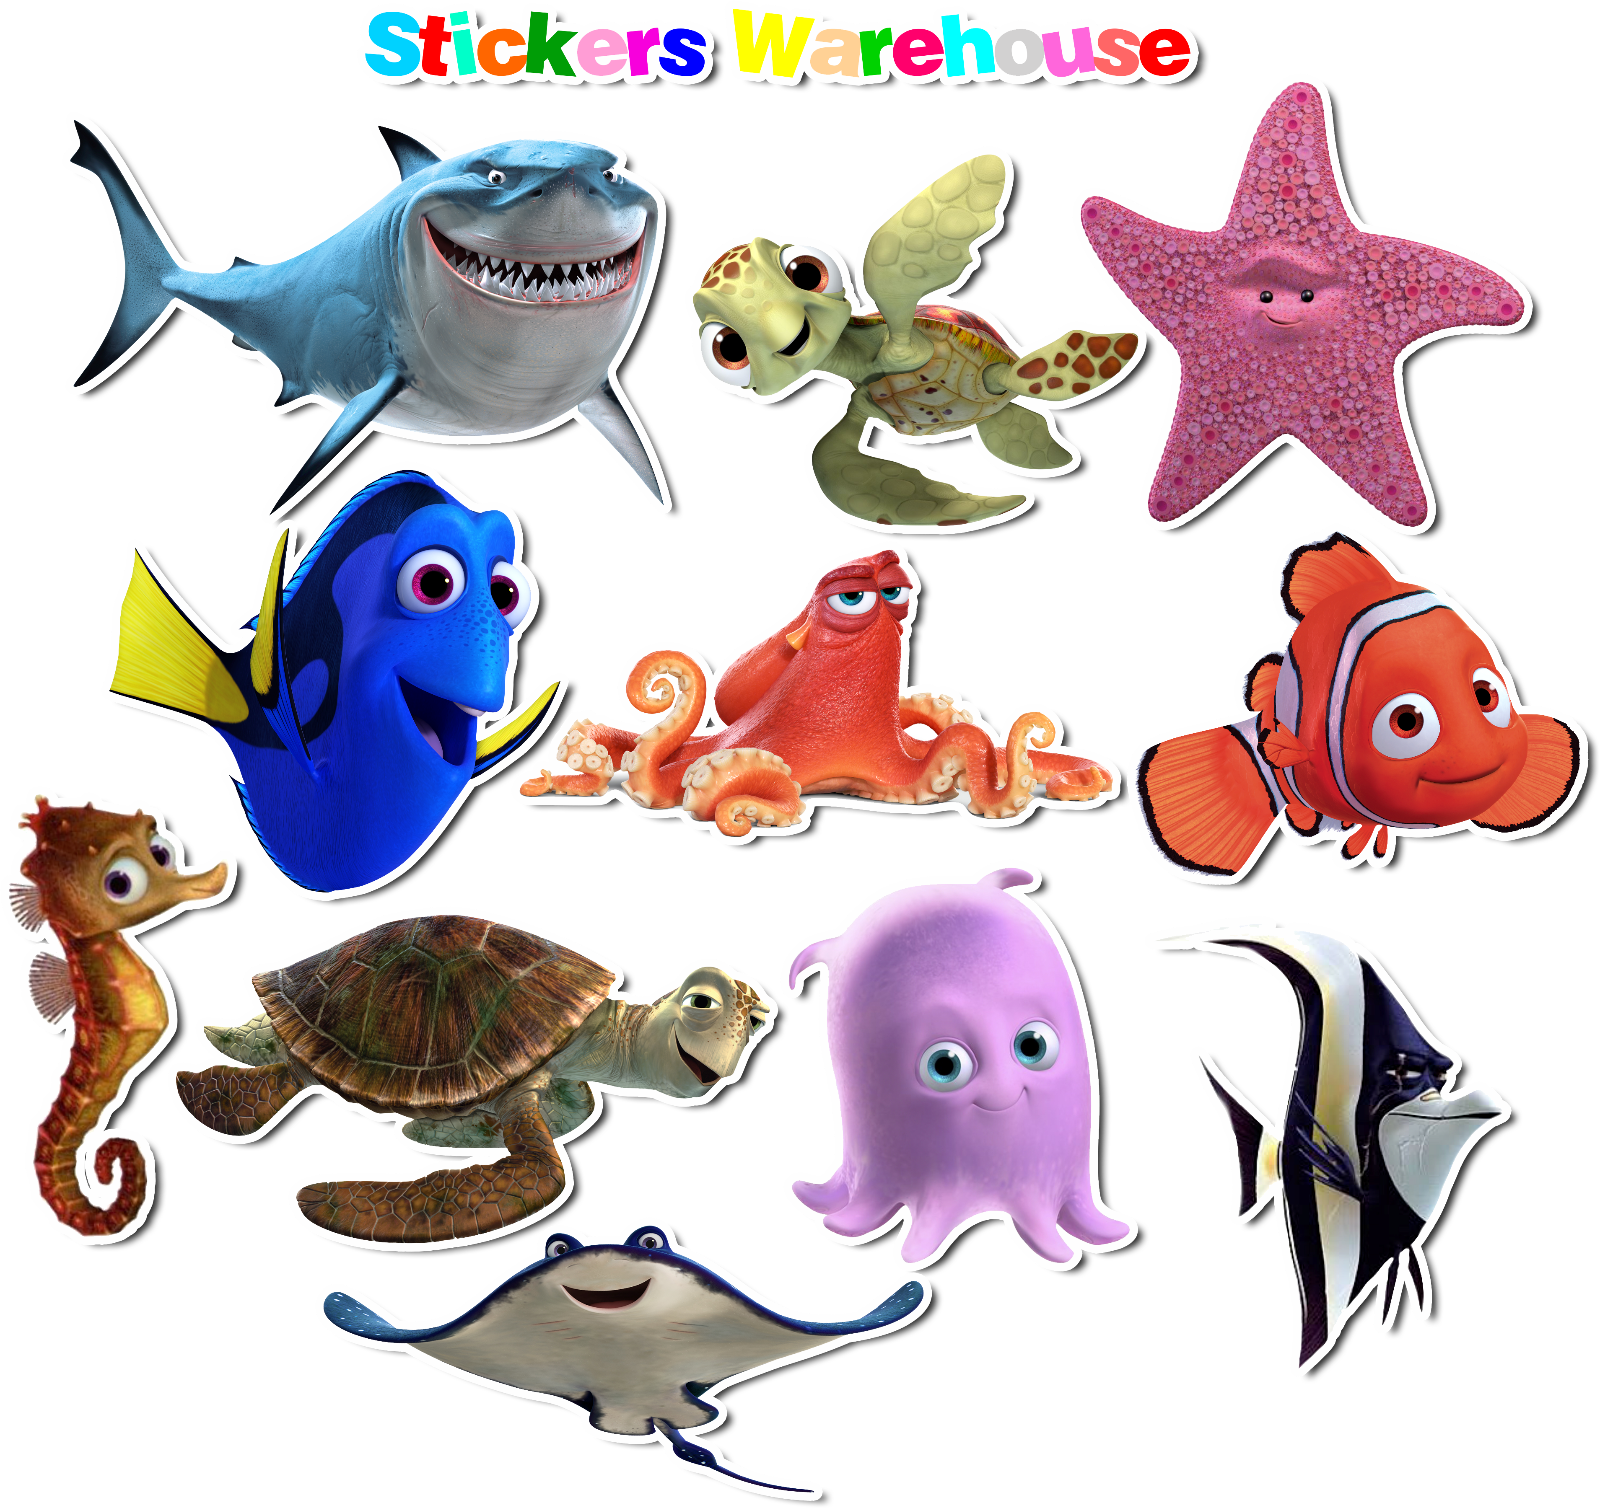 Home Decoration - Finding nemo theme Vinyl Stickers set for bathroom kids room decoration